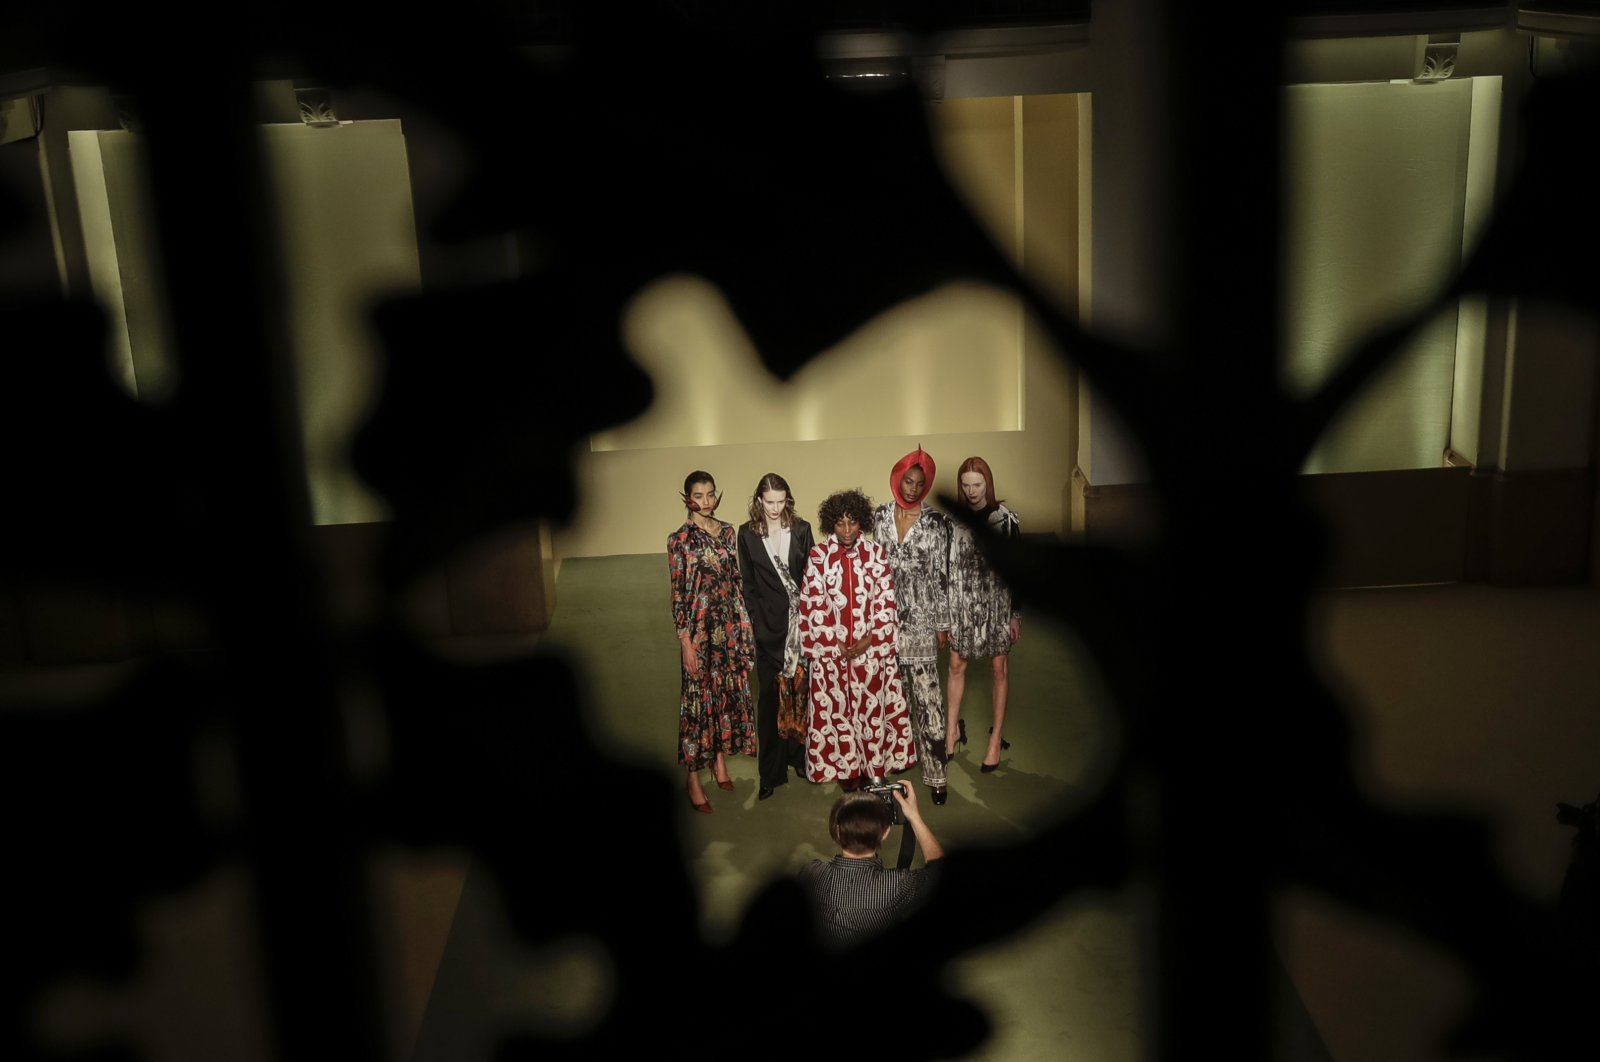 Fashion designer Fabiola Manirakiza, center, poses with models at the end of the Black Lives Matter Fall/Winter 2021/22 collective fashion show, presented in Milan, Italy, Feb. 17, 2021. (AP Photo)